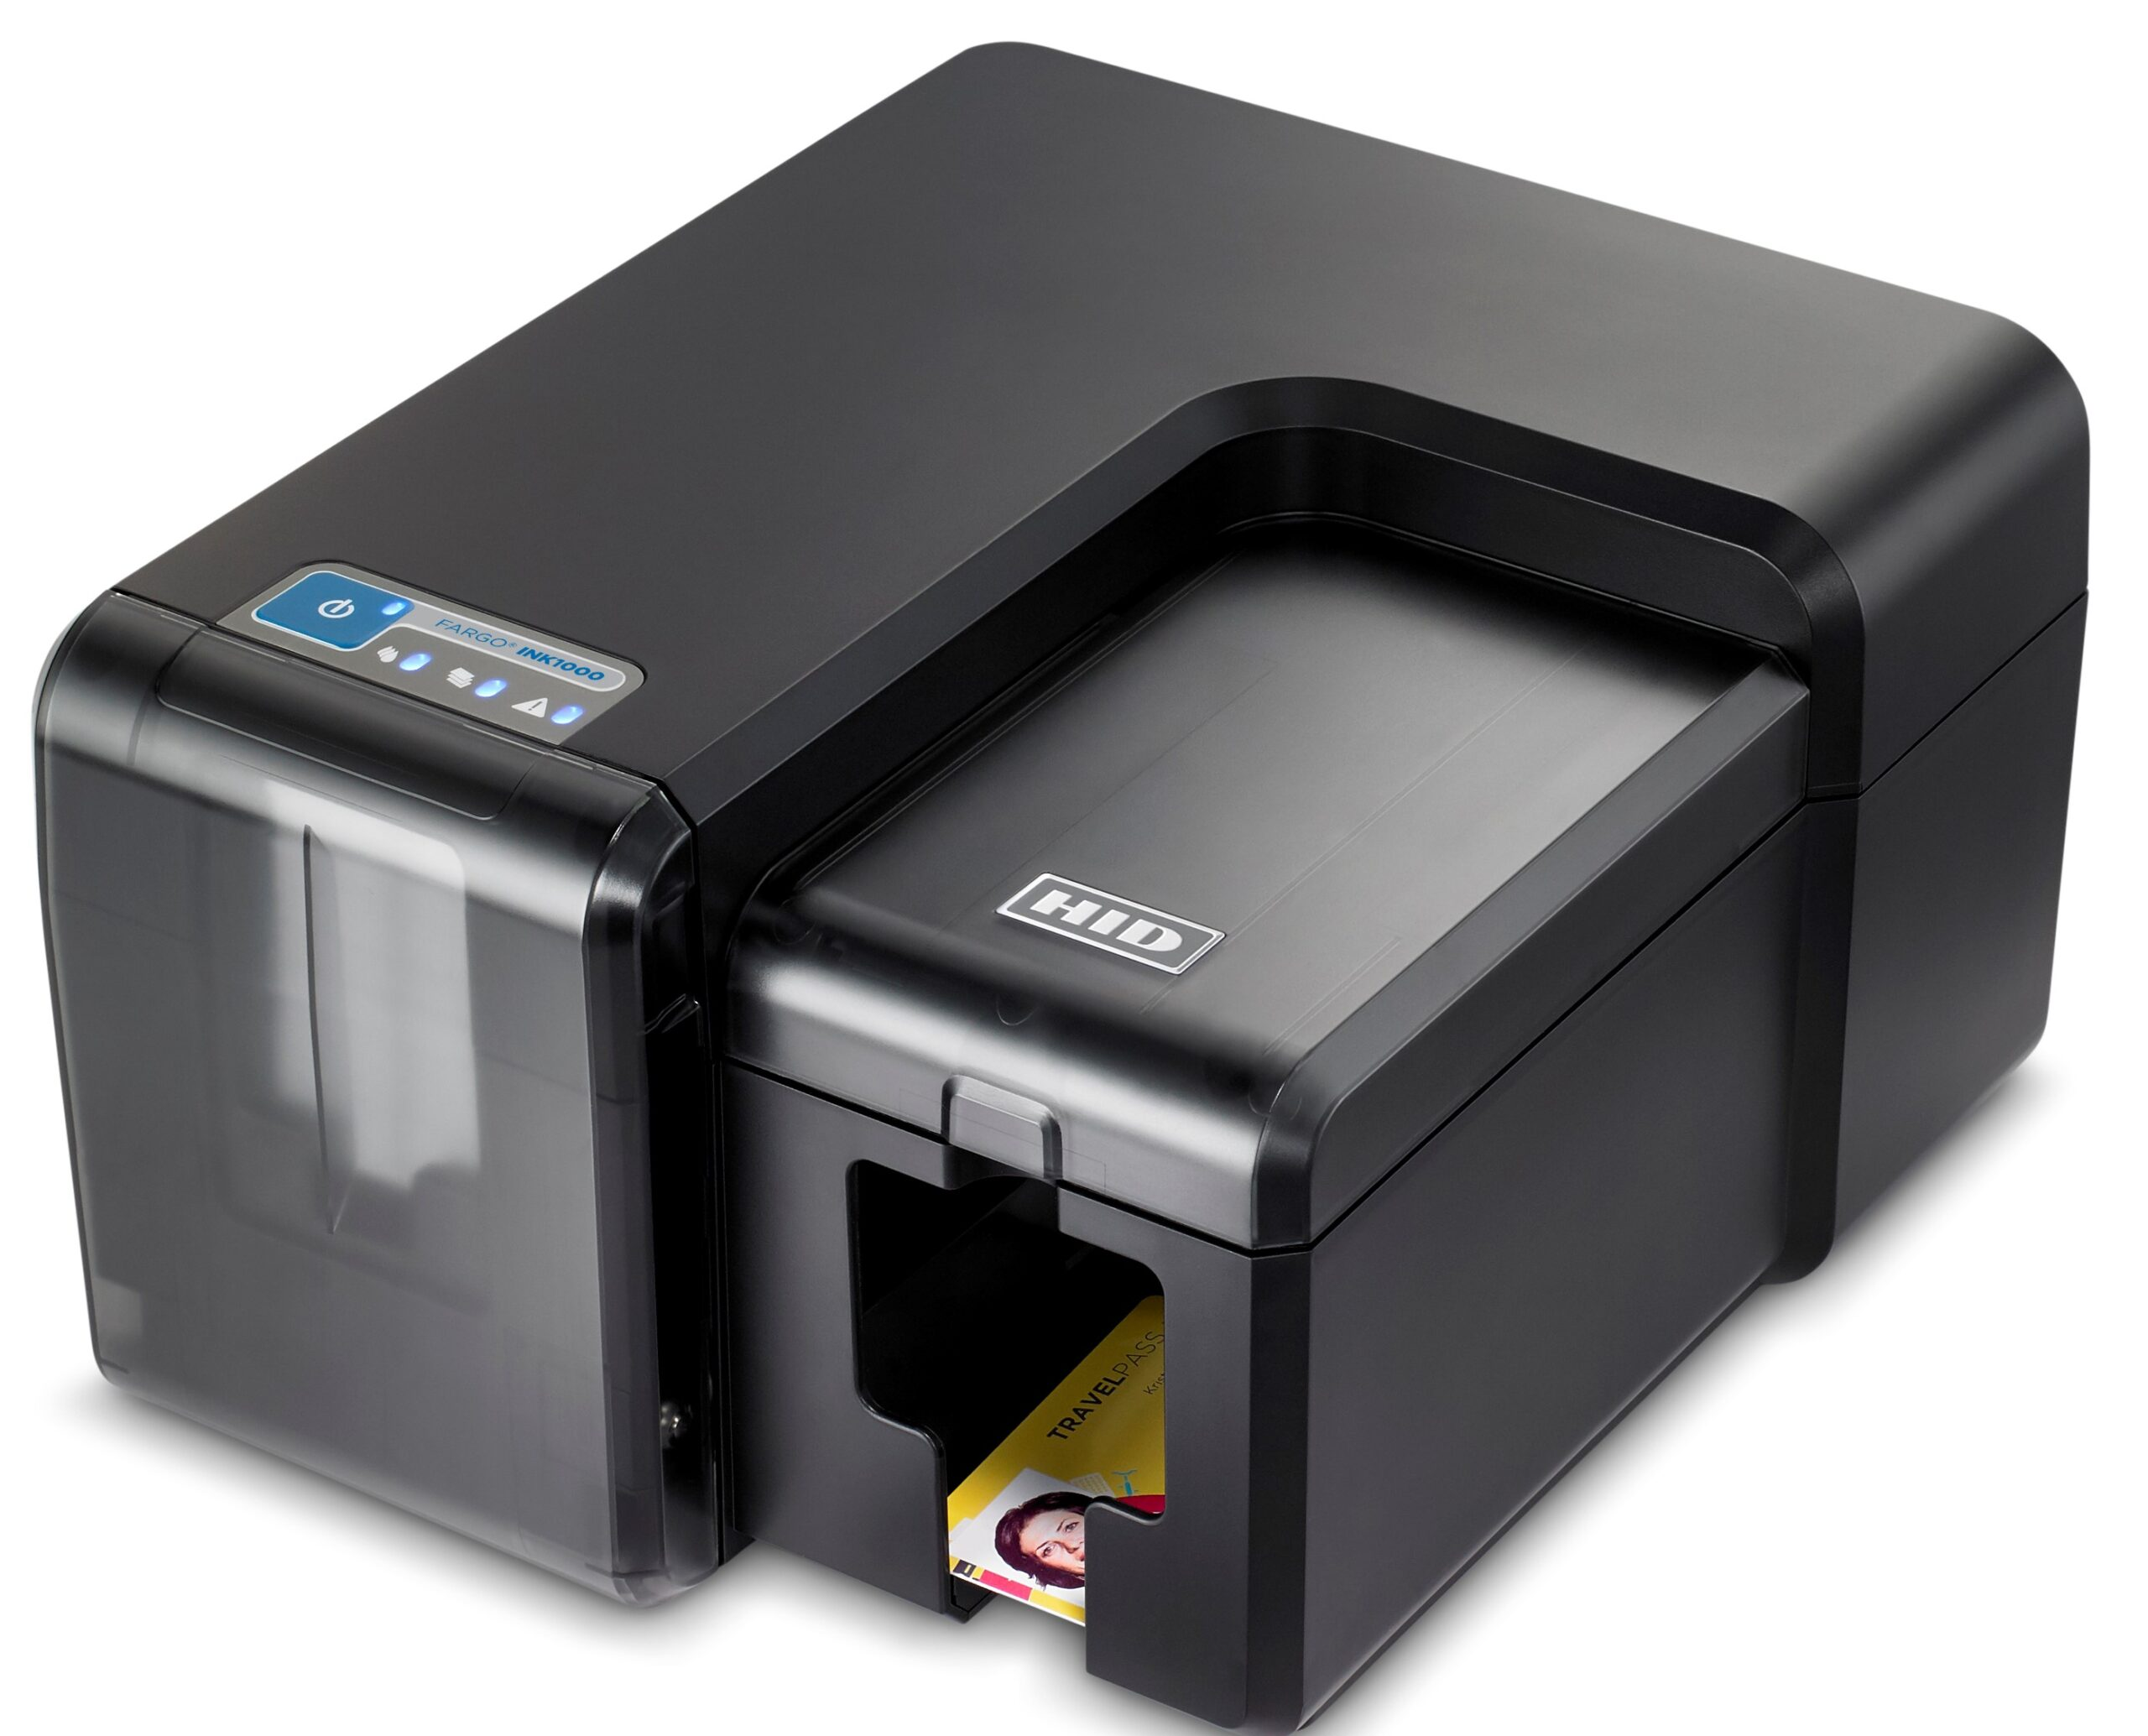 HID Fargo INK1000 Printer